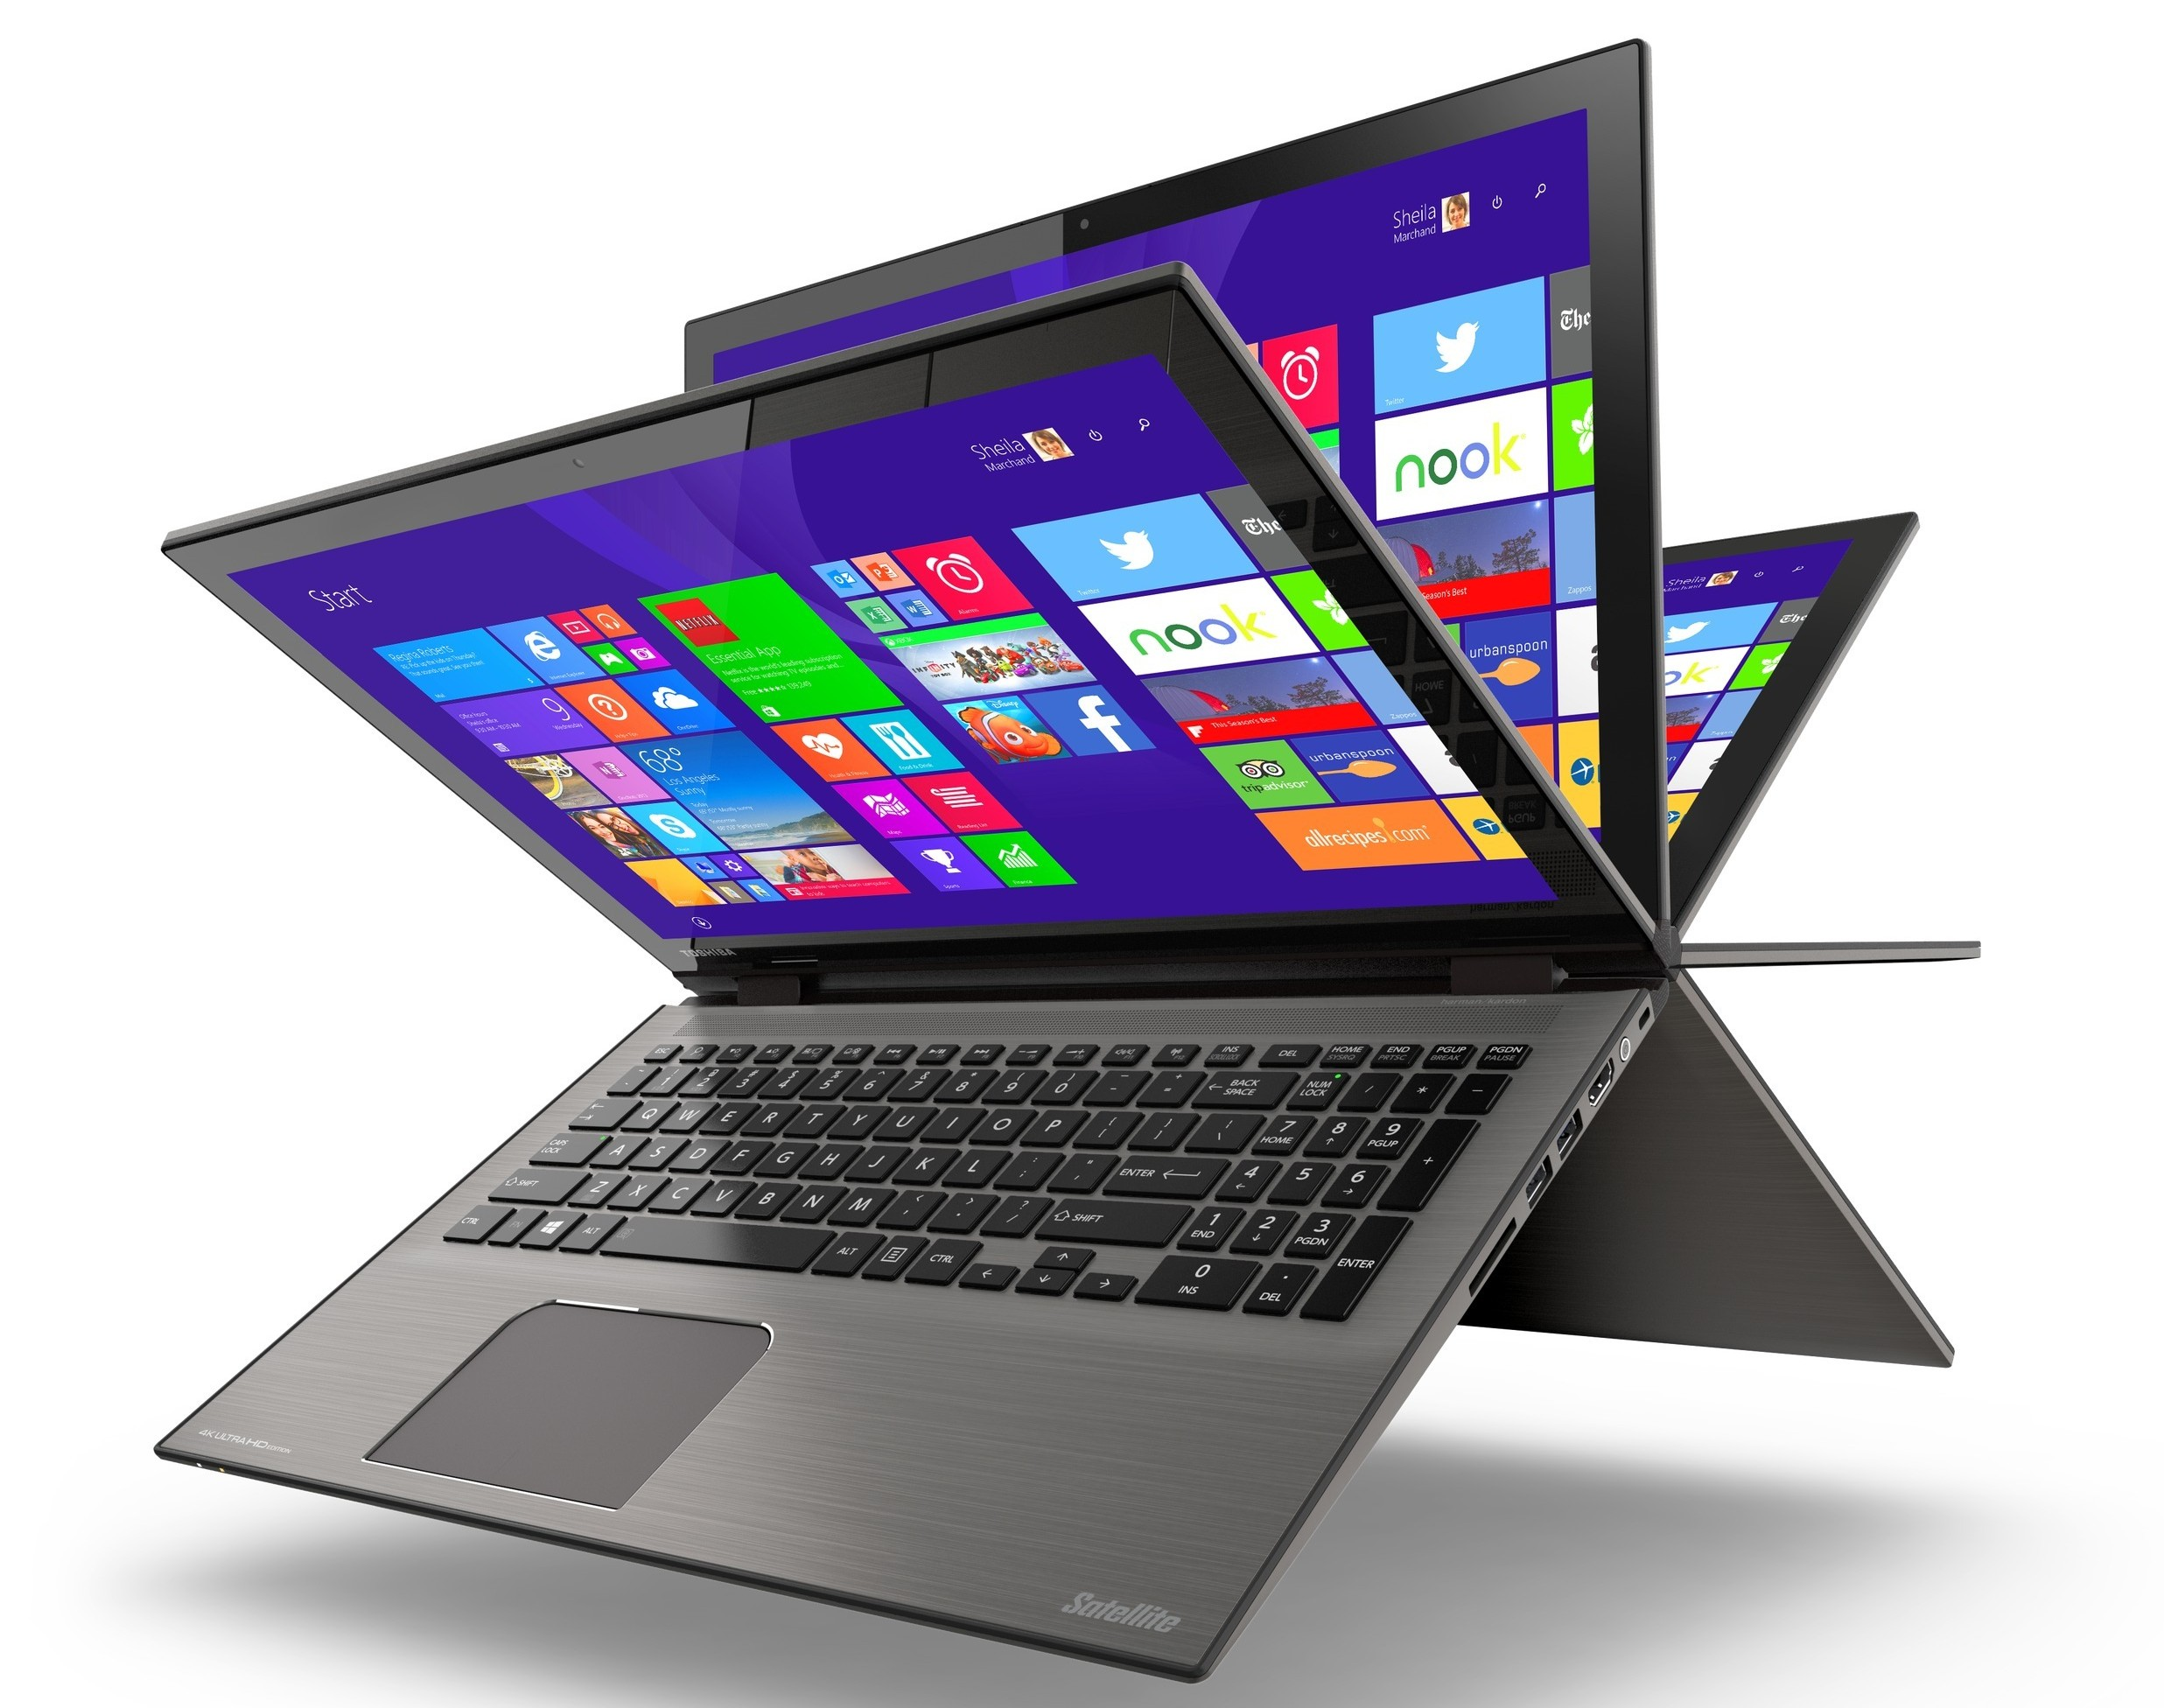 toshiba new Satellite Radius 2-in-1 2015 600